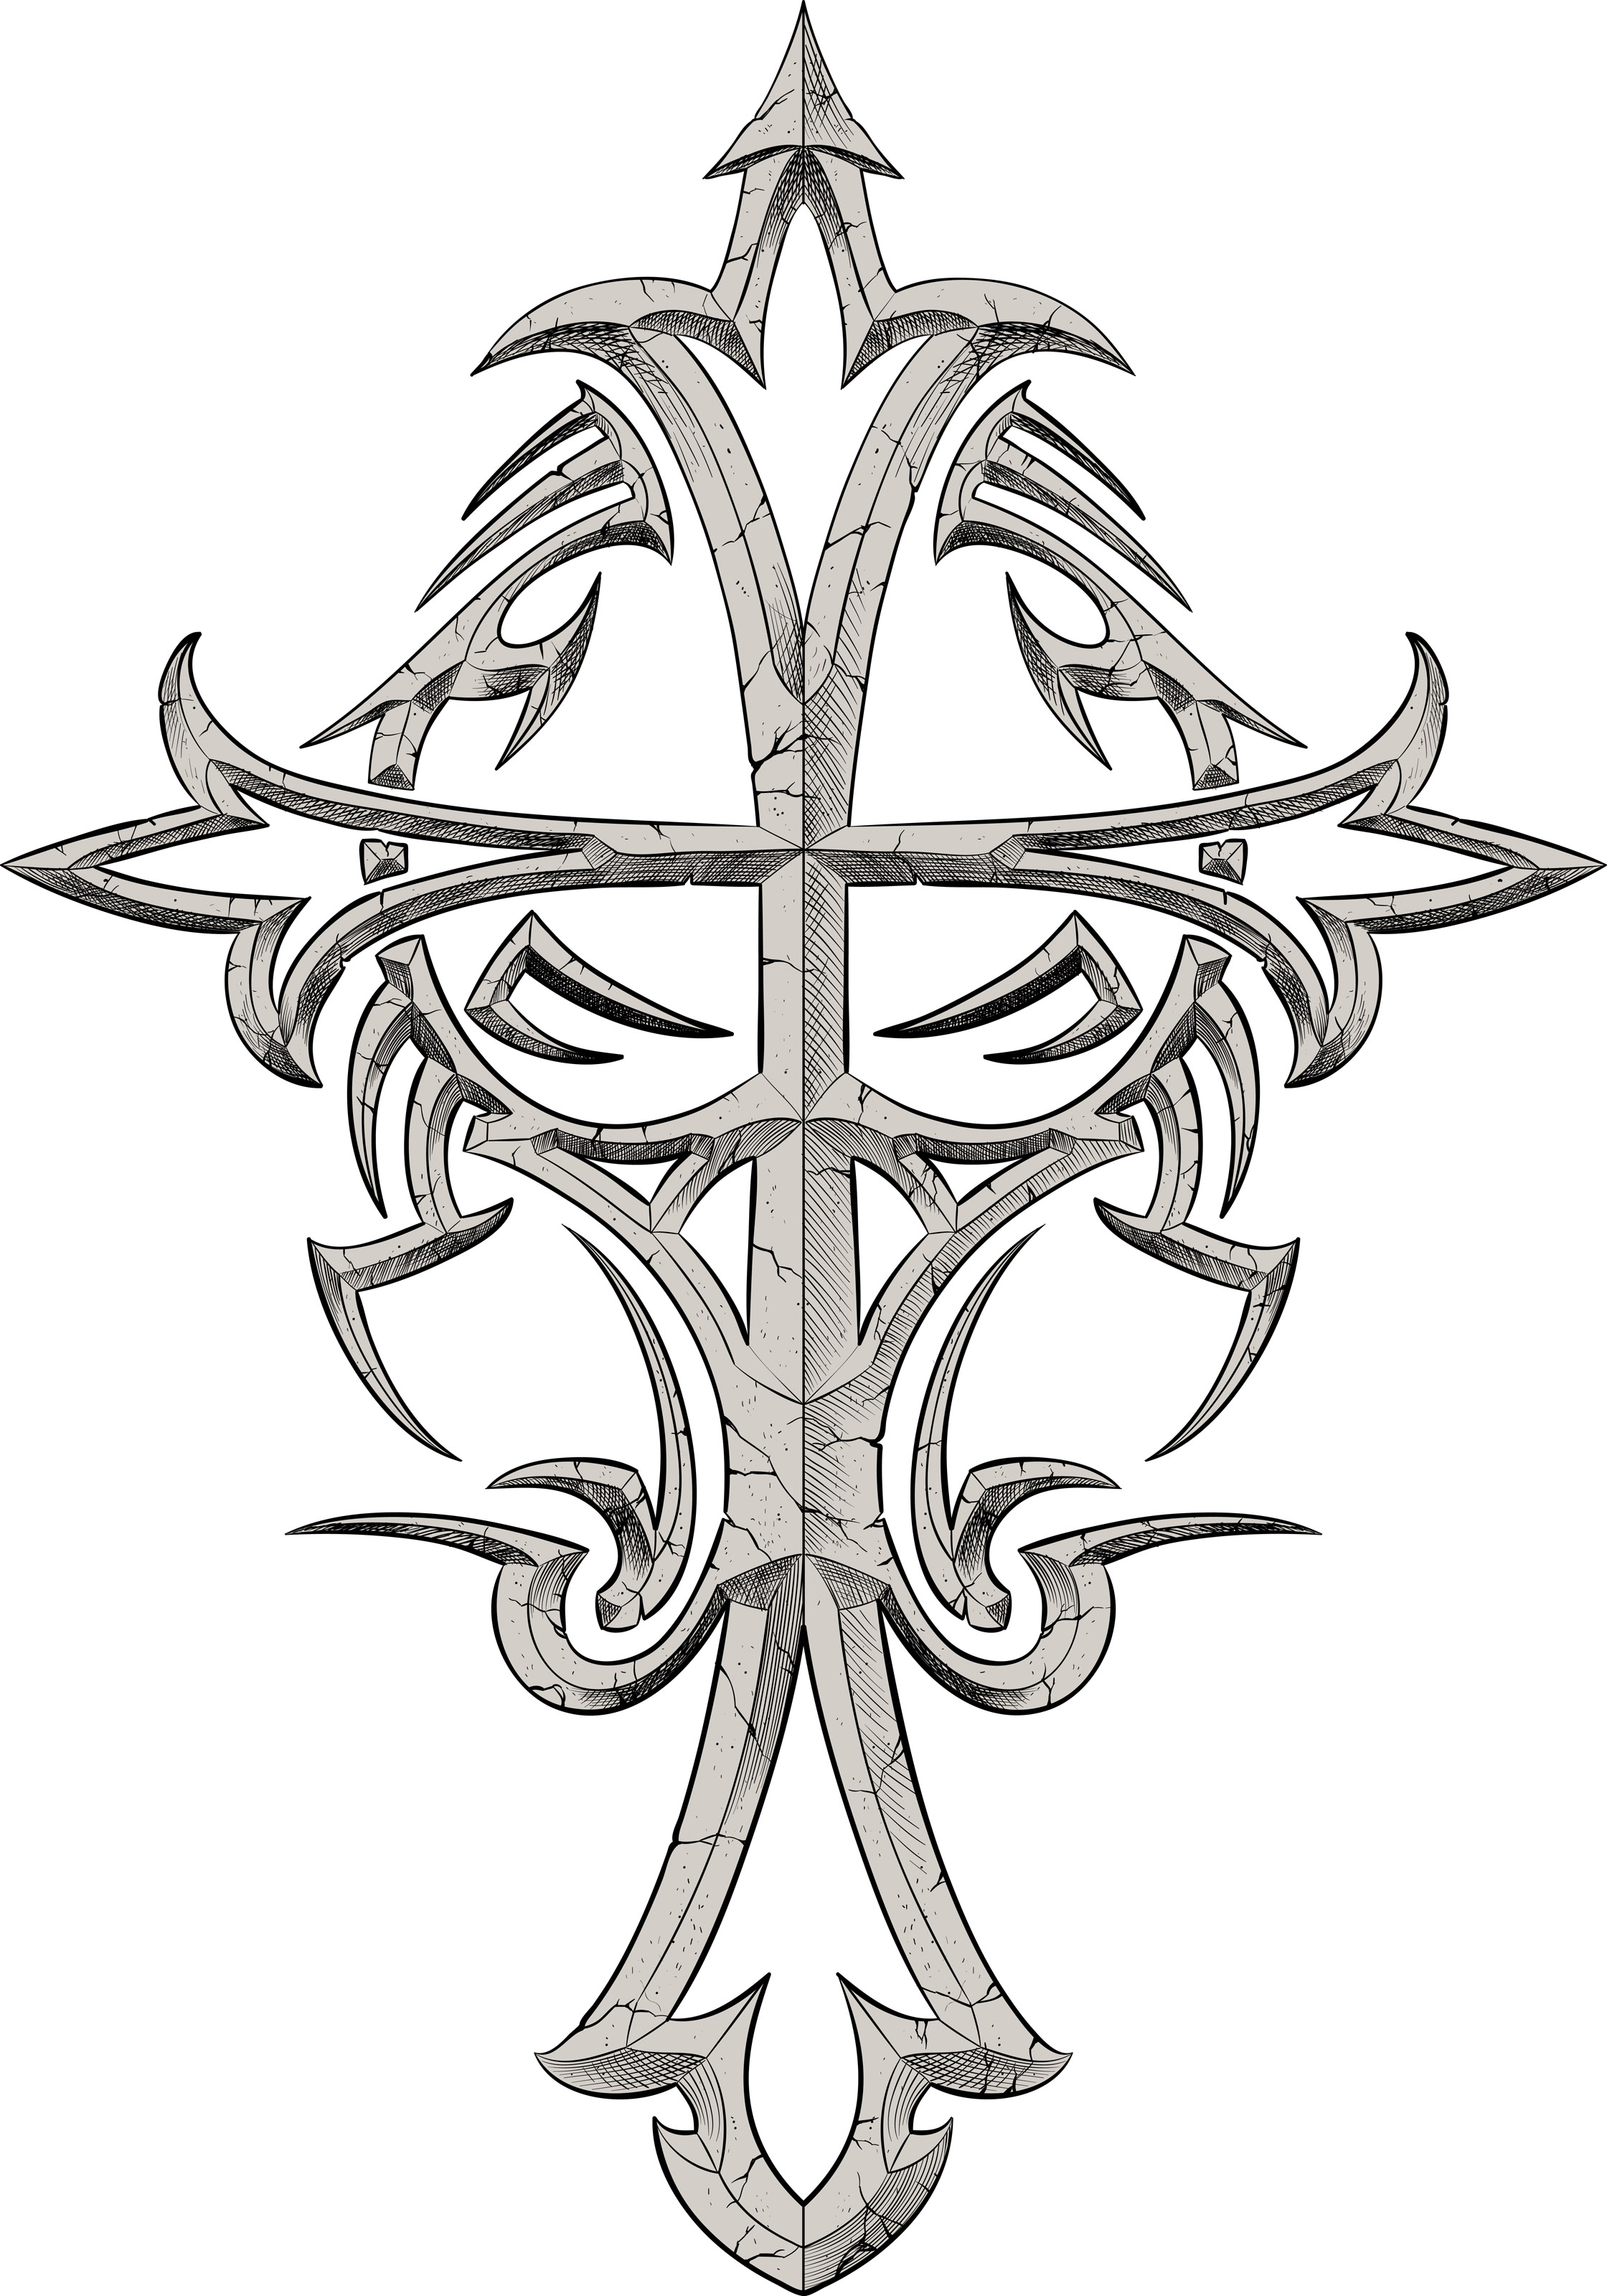 It's just an image of Dramatic Tribal Cross Drawing